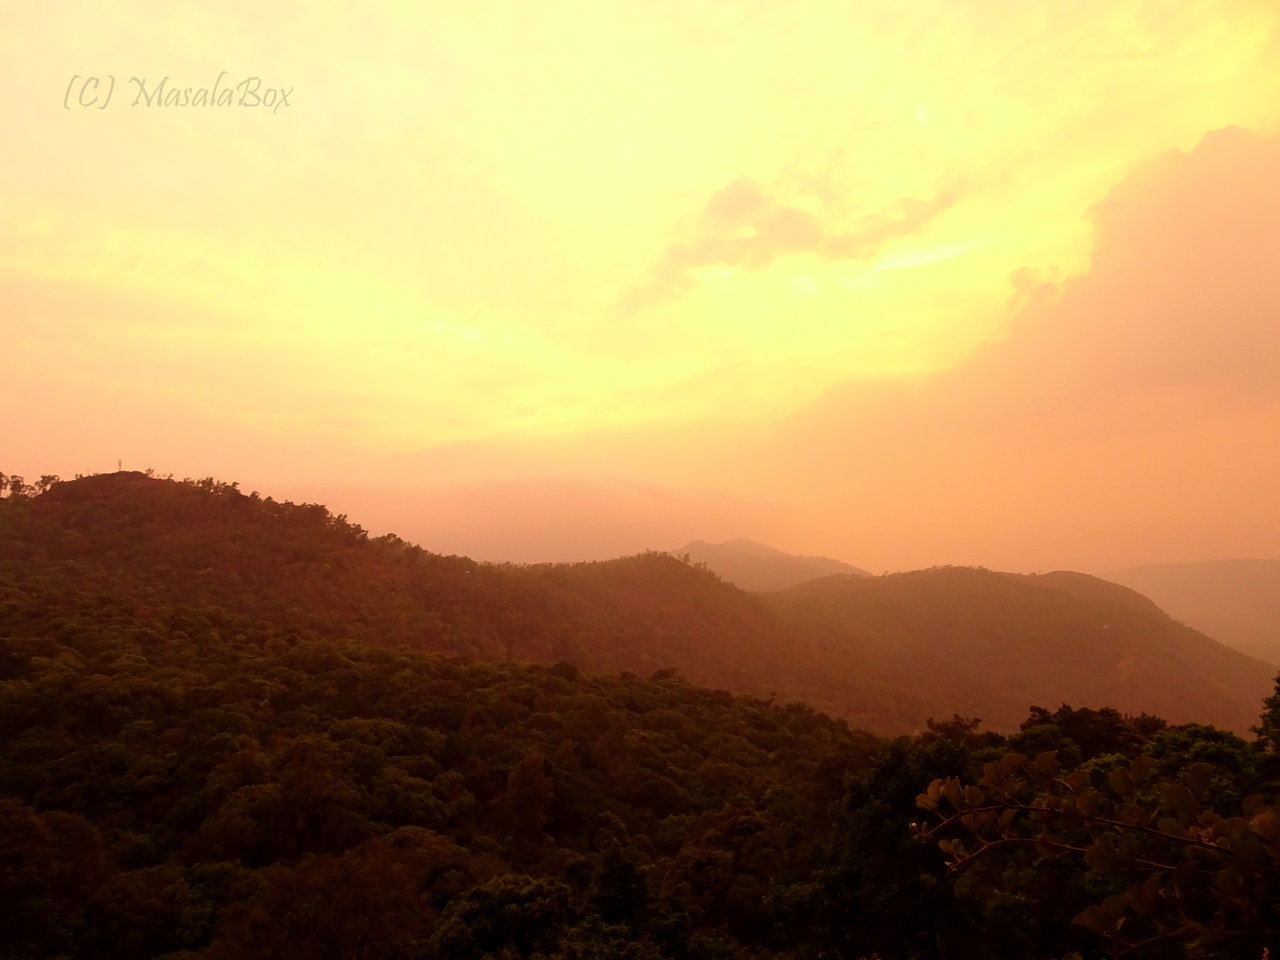 Chikmagalur - Sunset at Kemmanagudi